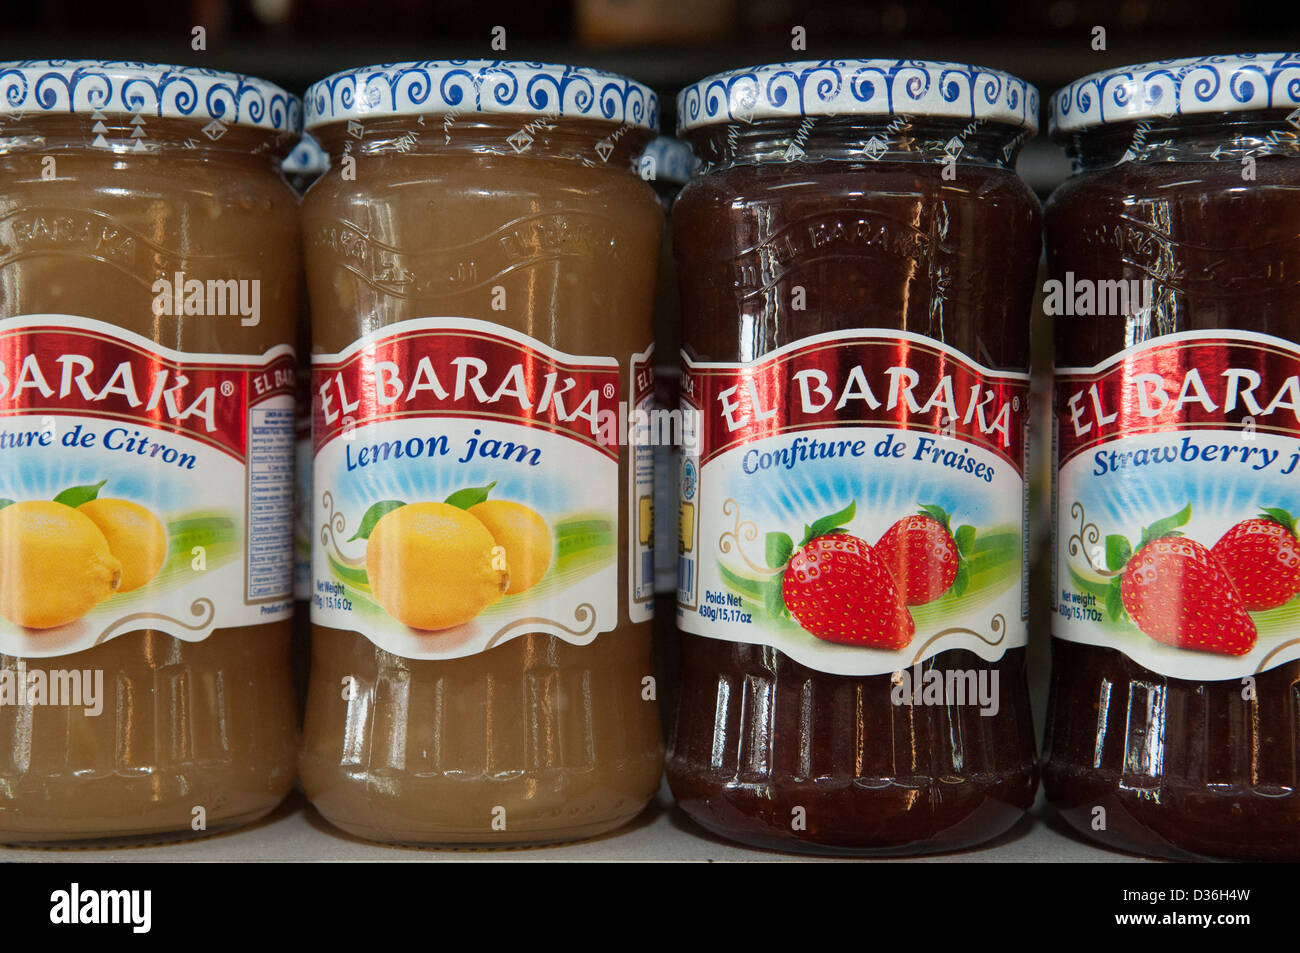 Imported jam from Northern Africa - Stock Image